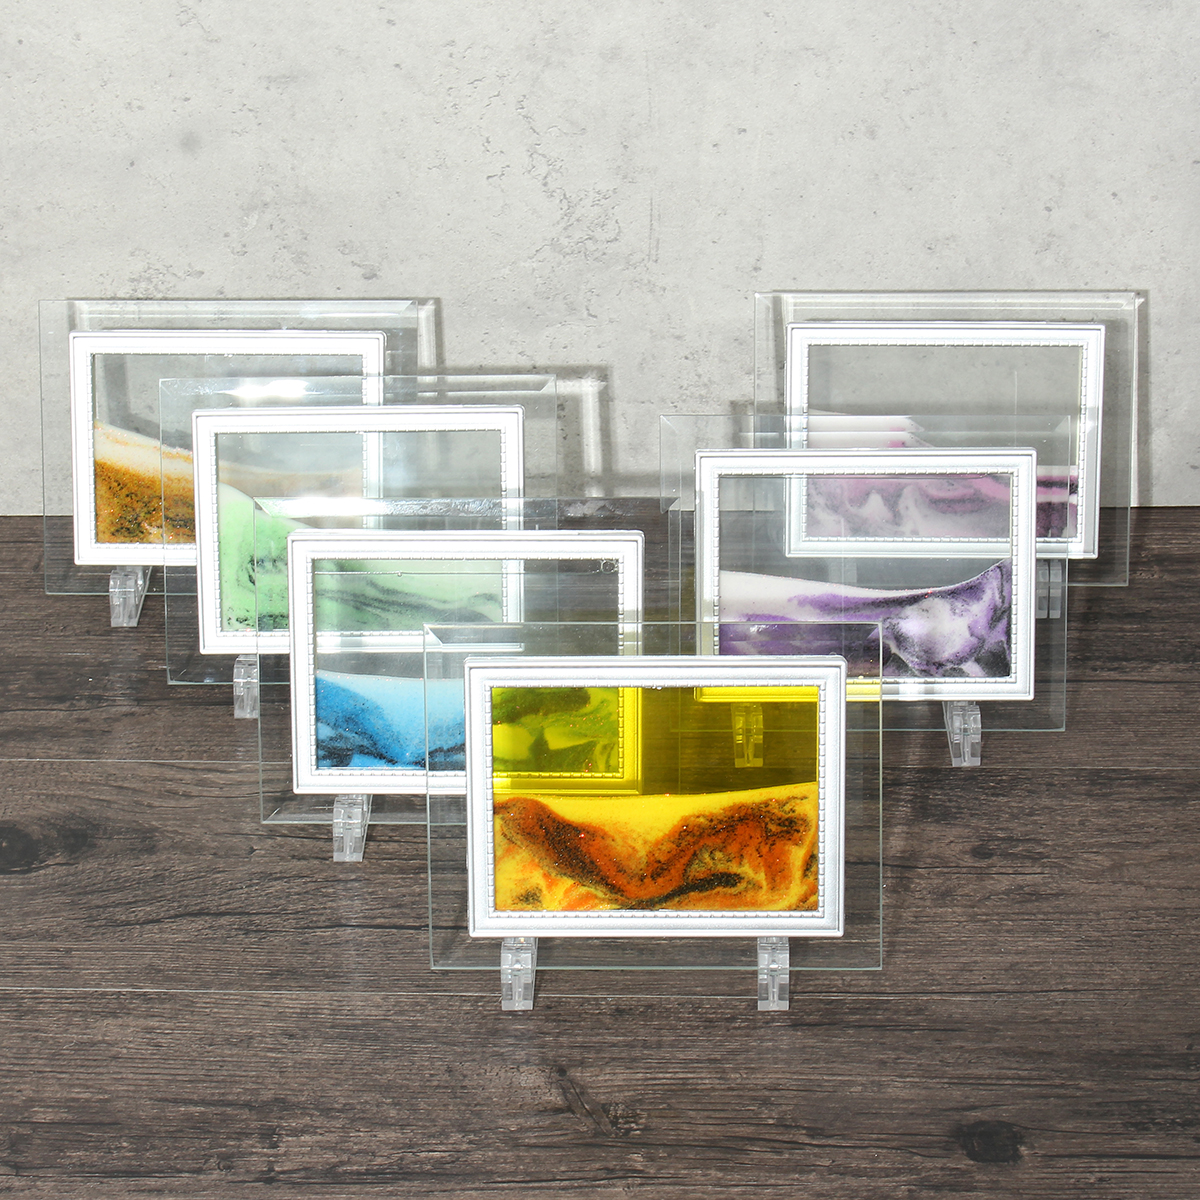 Framed Moving Sand Time Glass Art Picture Home Office Desk Decor Craft 17 X 13cm